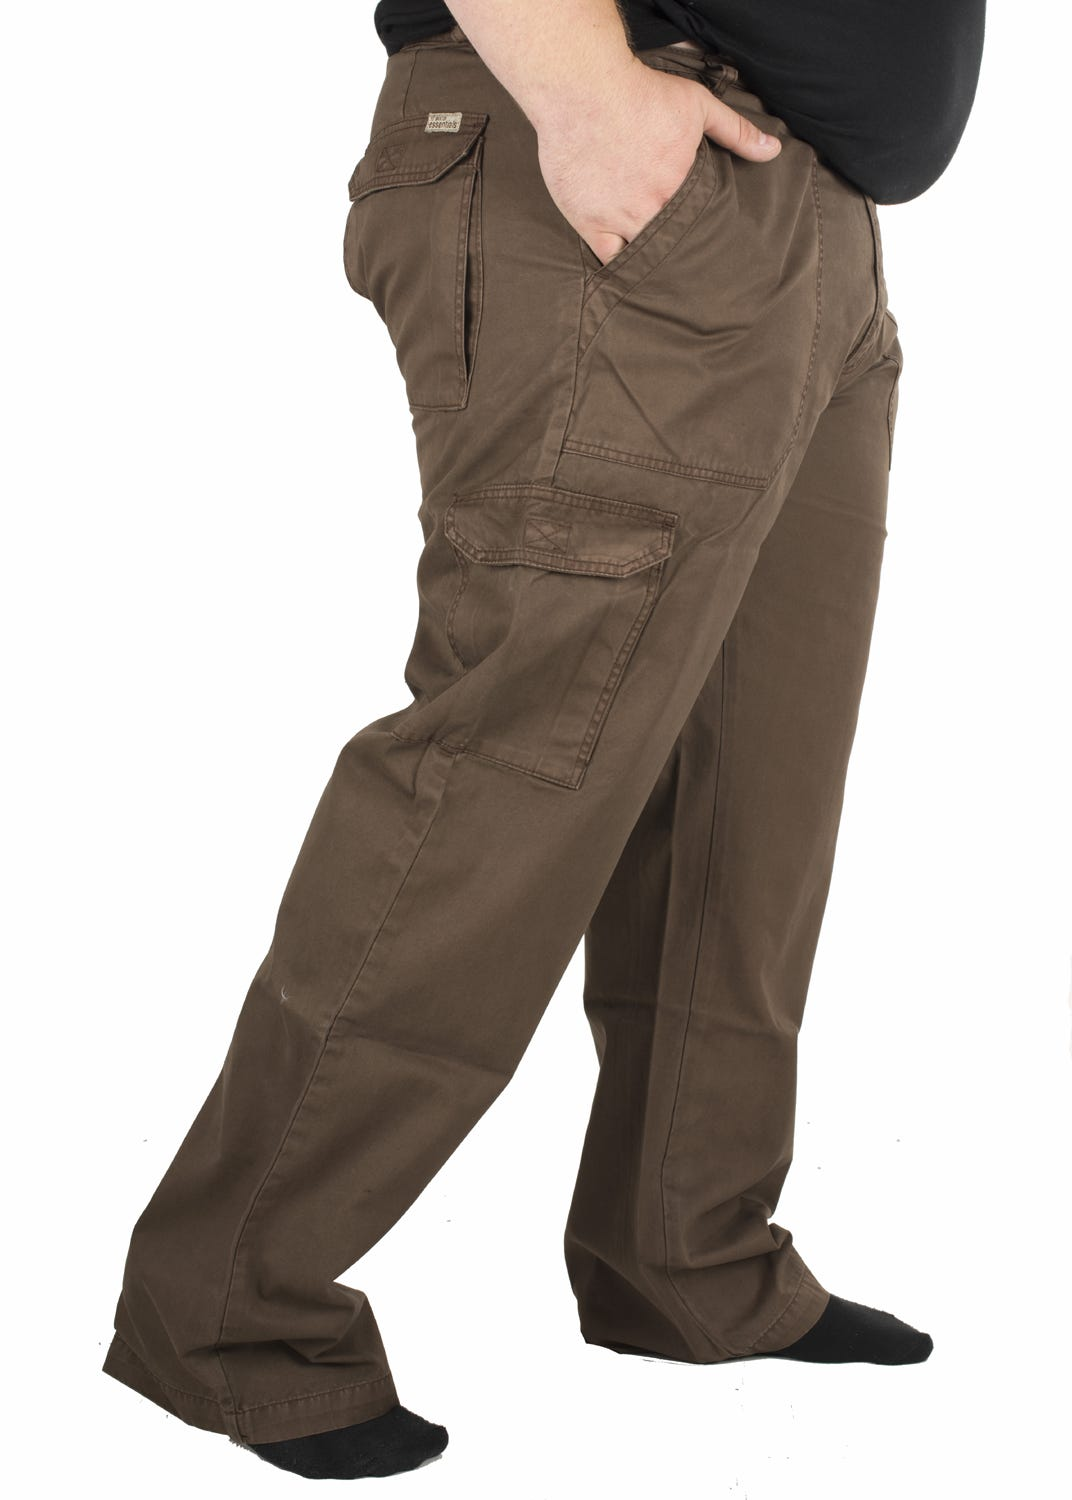 Ed Baxter Victory - Heavy Duty Cargo Combat Trousers - Chocolate